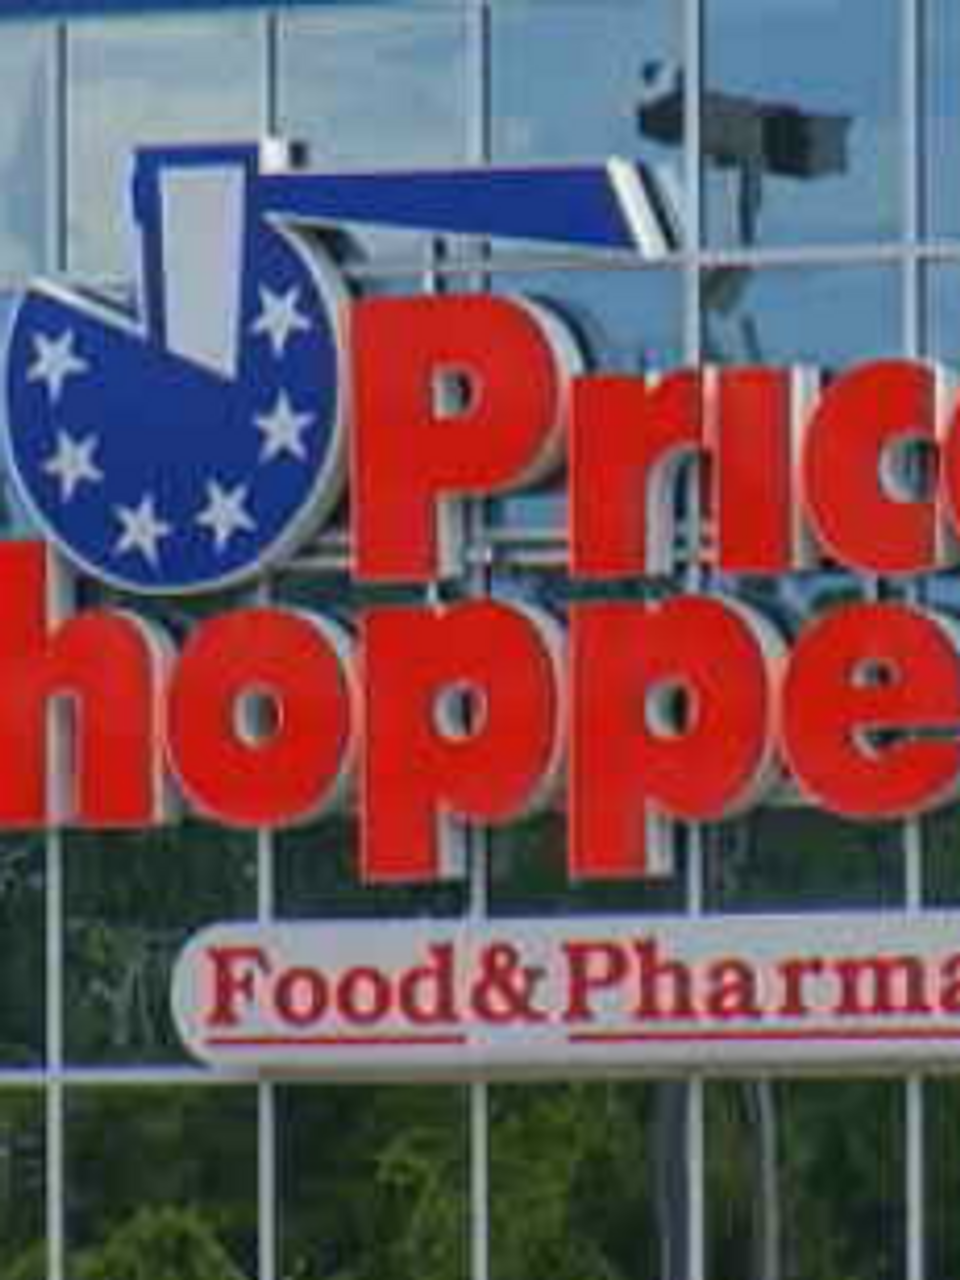 Price Chopper Market 32 To Close North Troy Store Wrgb